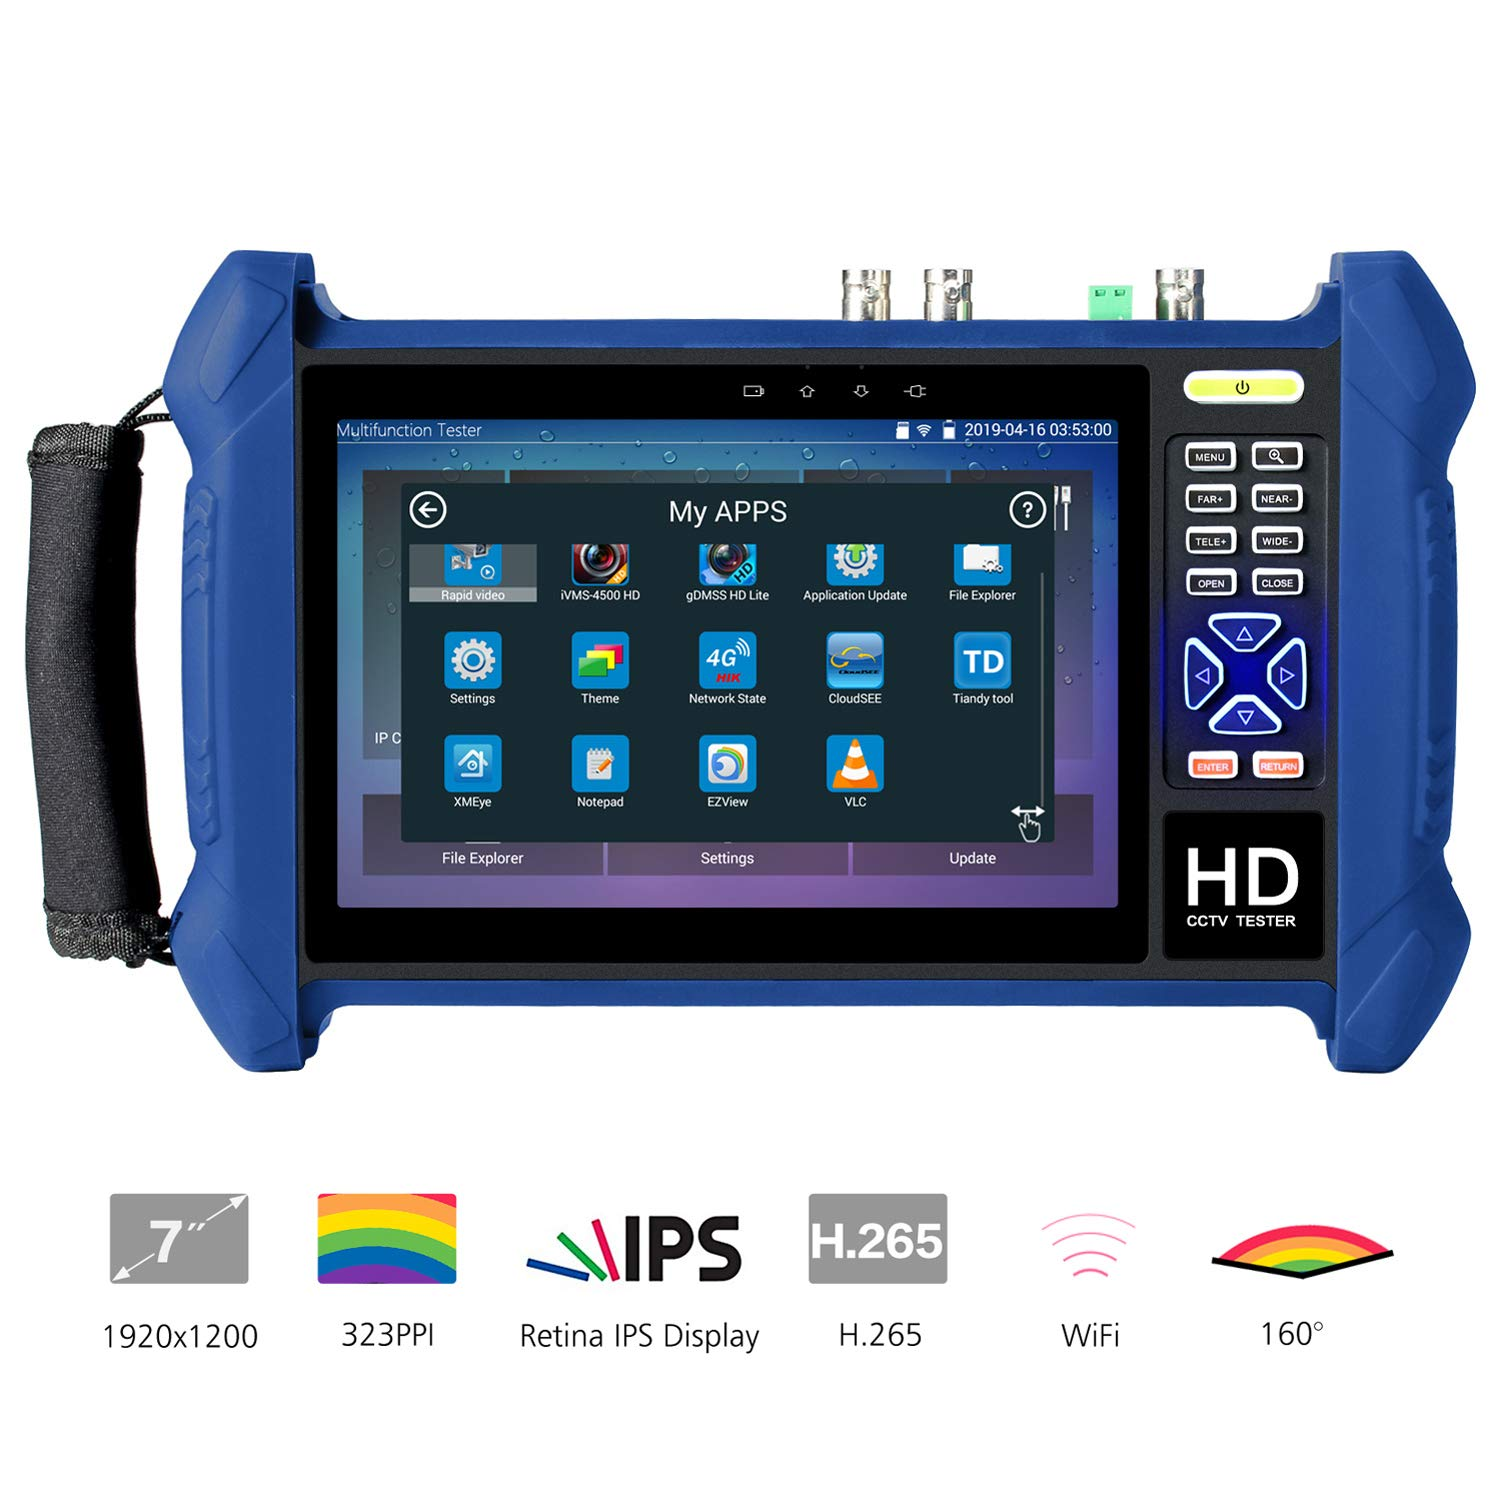 Koolertron 7 inch 1920x1200 Retina Display IP Camera Tester H.265 323PPI Touch Screen Security CCTV Tester Monitor Dual Gigabit Network Ports Built-in WiFi SDI/TVI/AHD/CVI/TDR/HDMI in&Out Cable Tracer by Koolertron